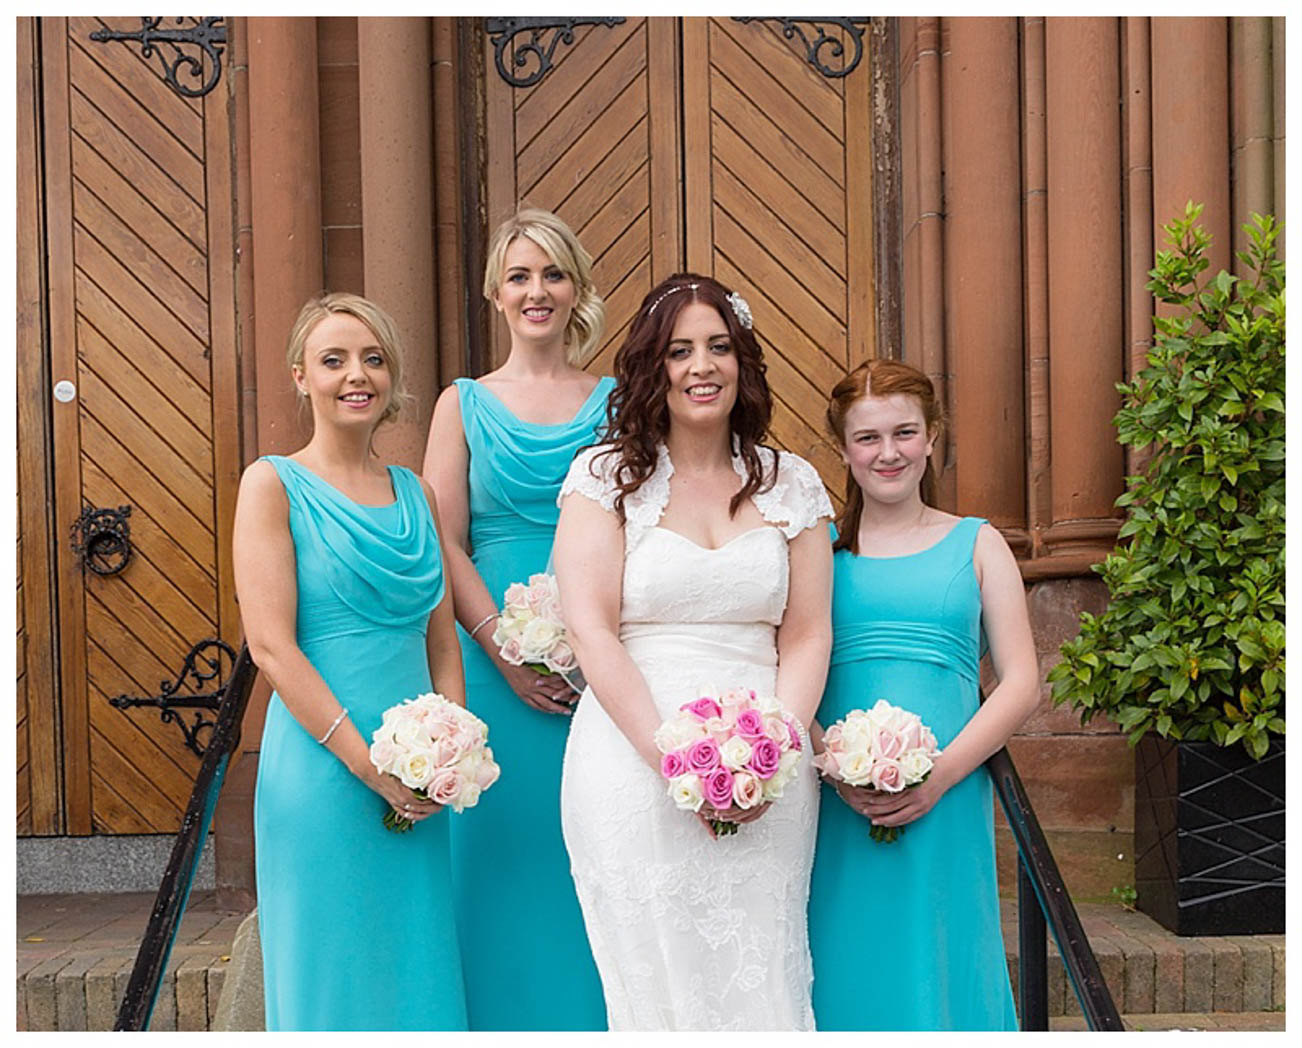 Ballygally Castle Wedding Photographs by Ricky Parker Photography 18